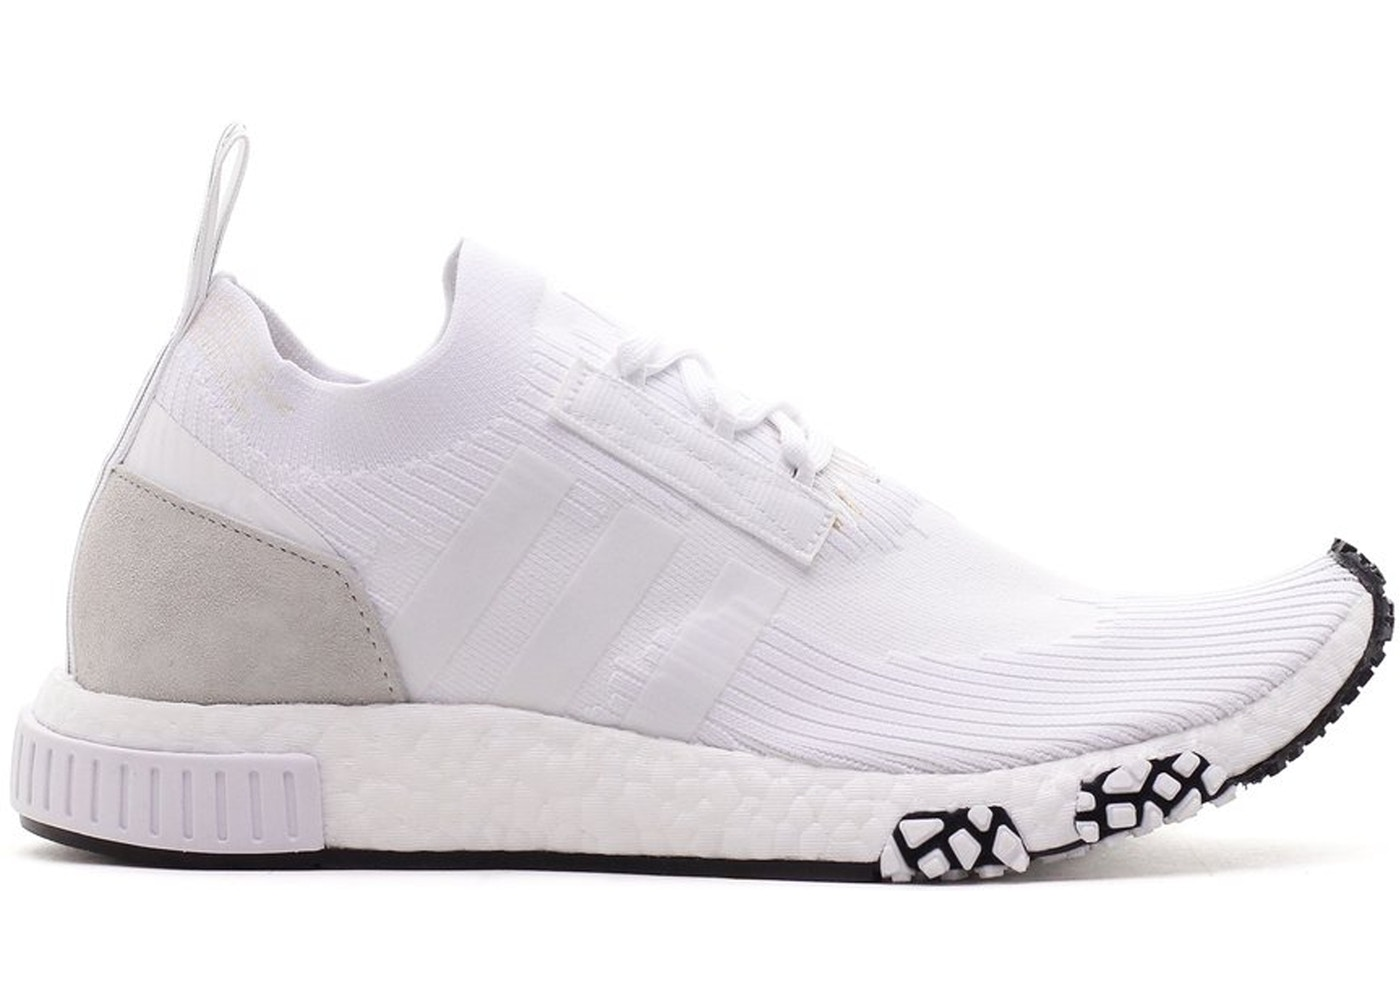 adidas NMD Racer White Grey